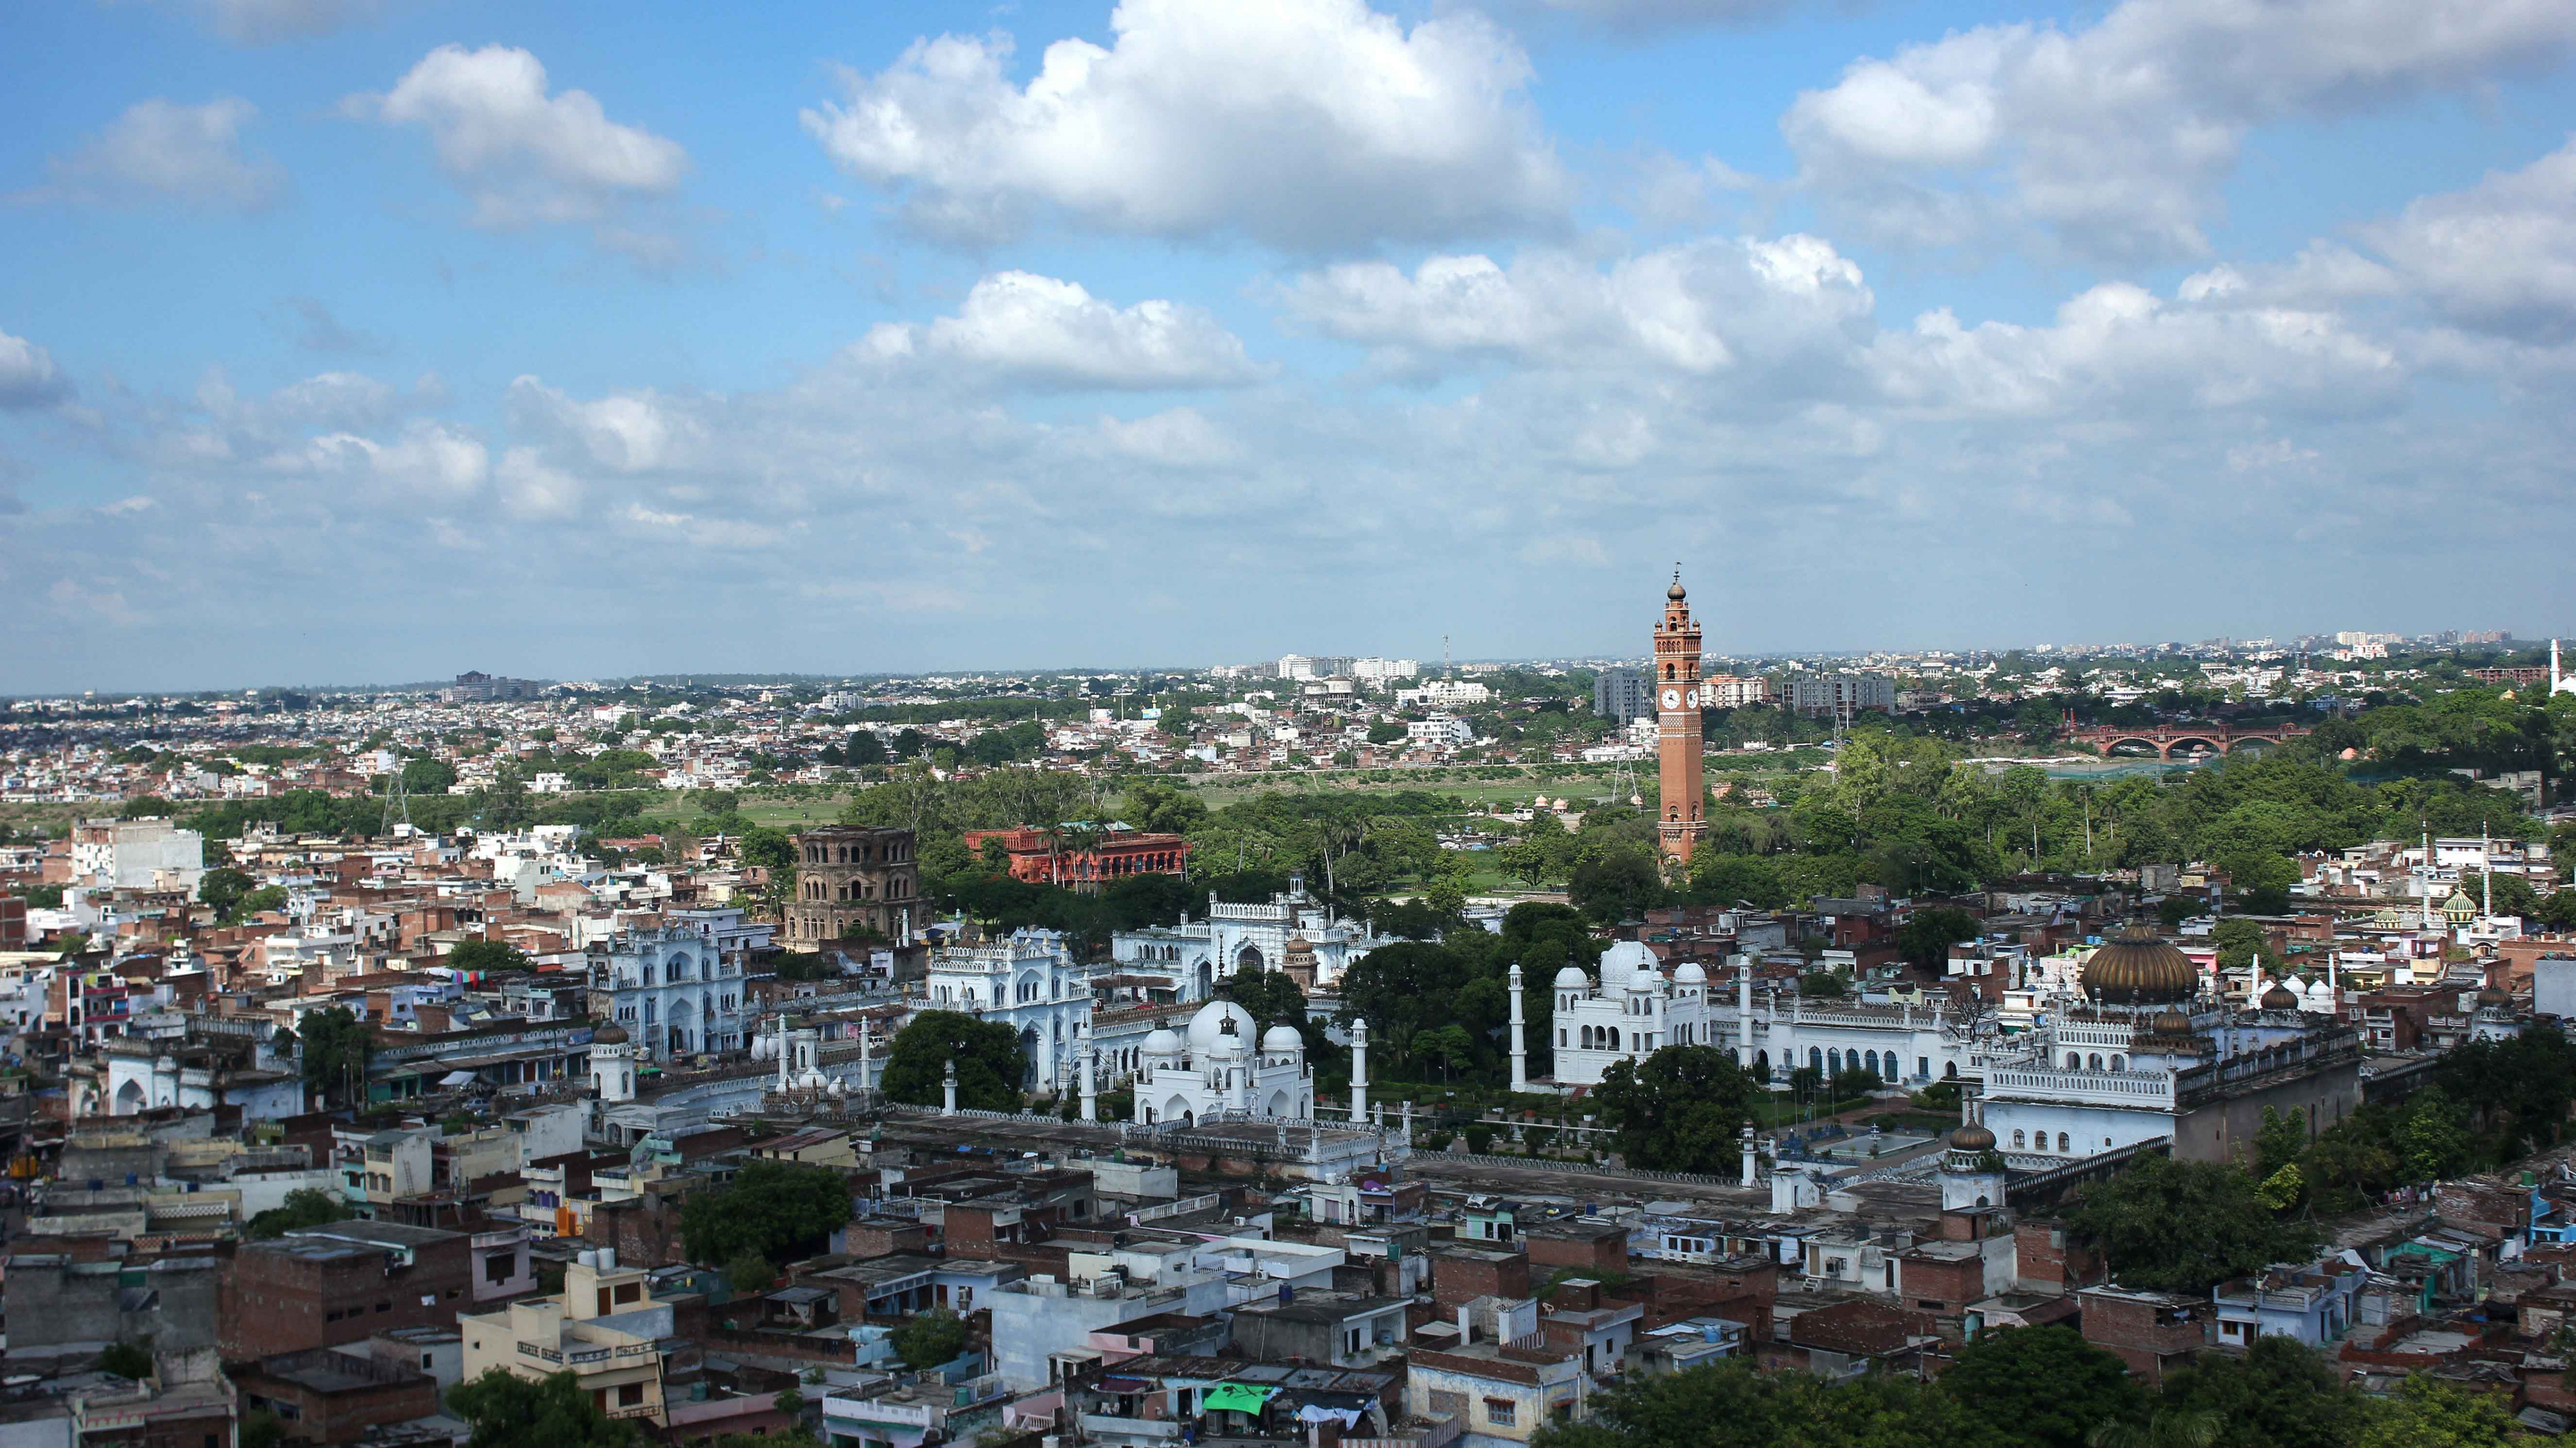 A Complete pics of Lucknow